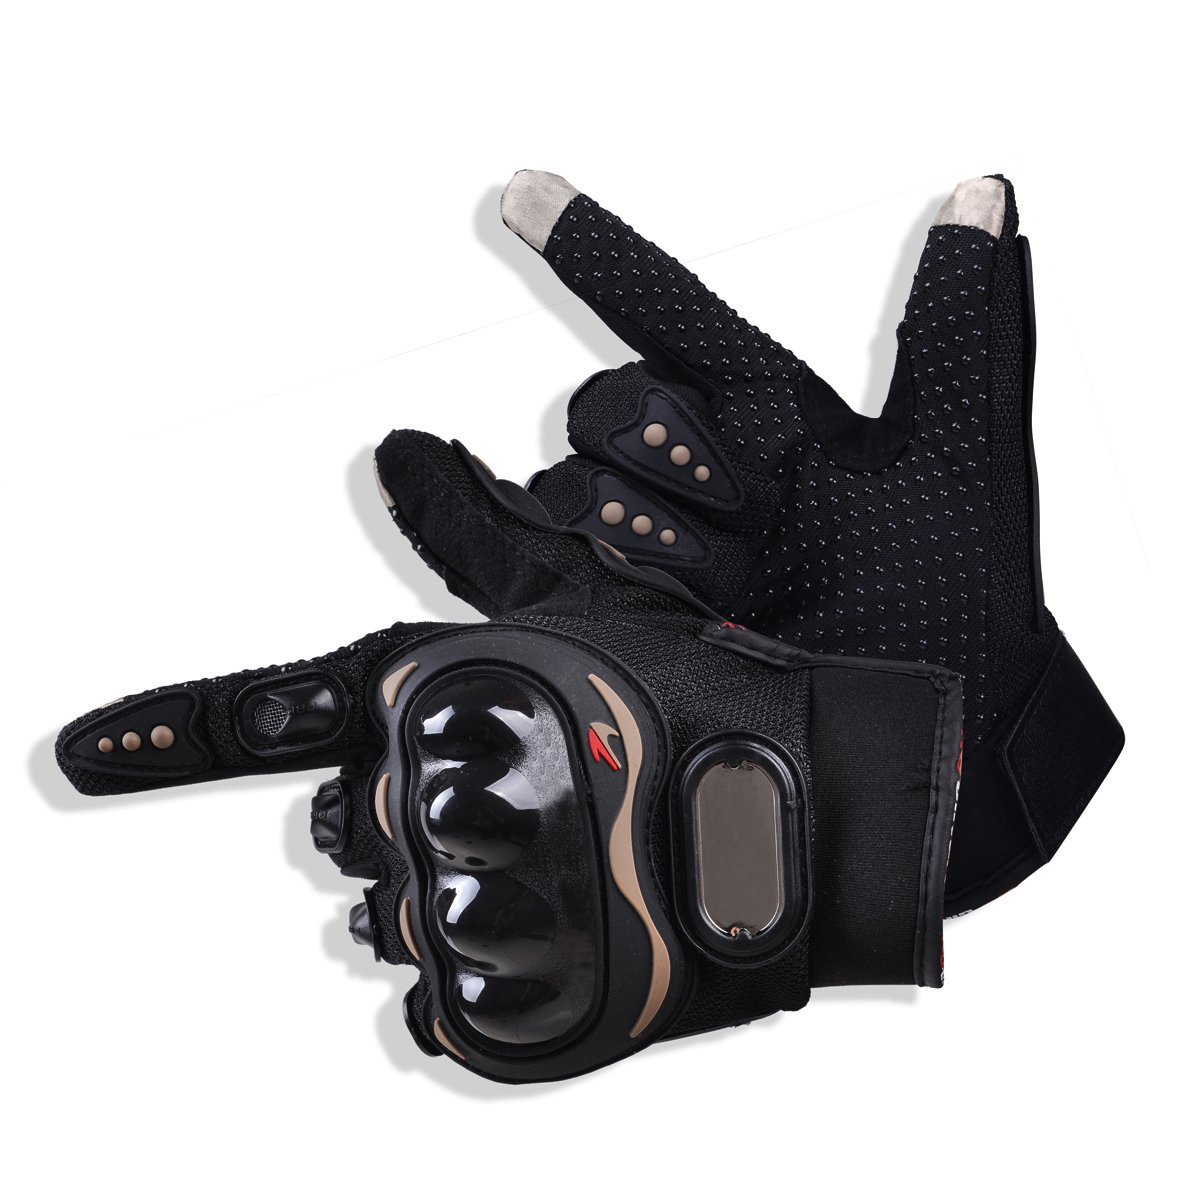 CHCYCLE motorcycle gloves touch screen summer motorbike powersports protective racing gloves (XX-Large)